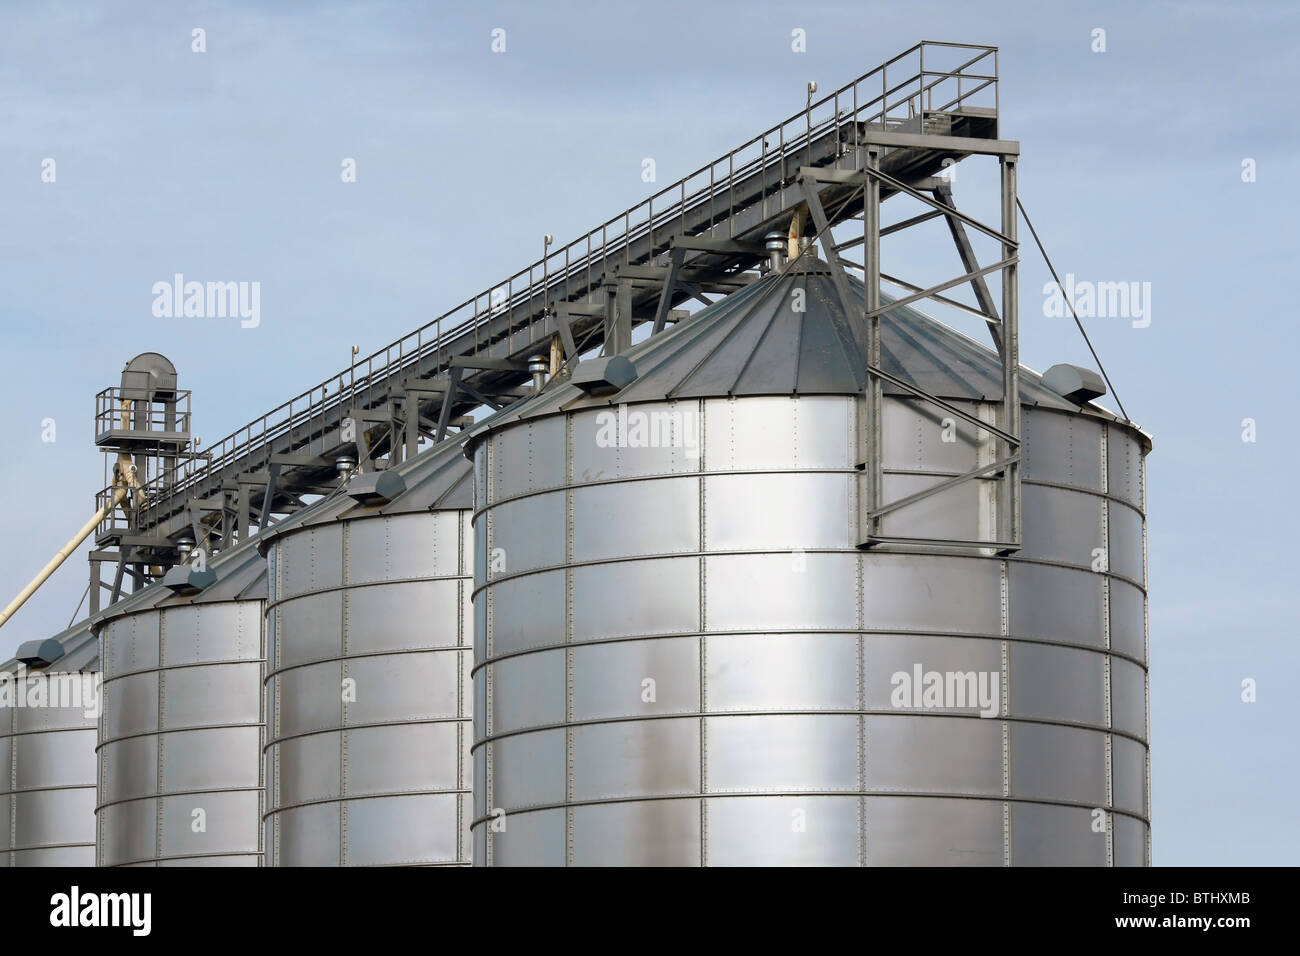 agricultural storage tanks - Stock Image